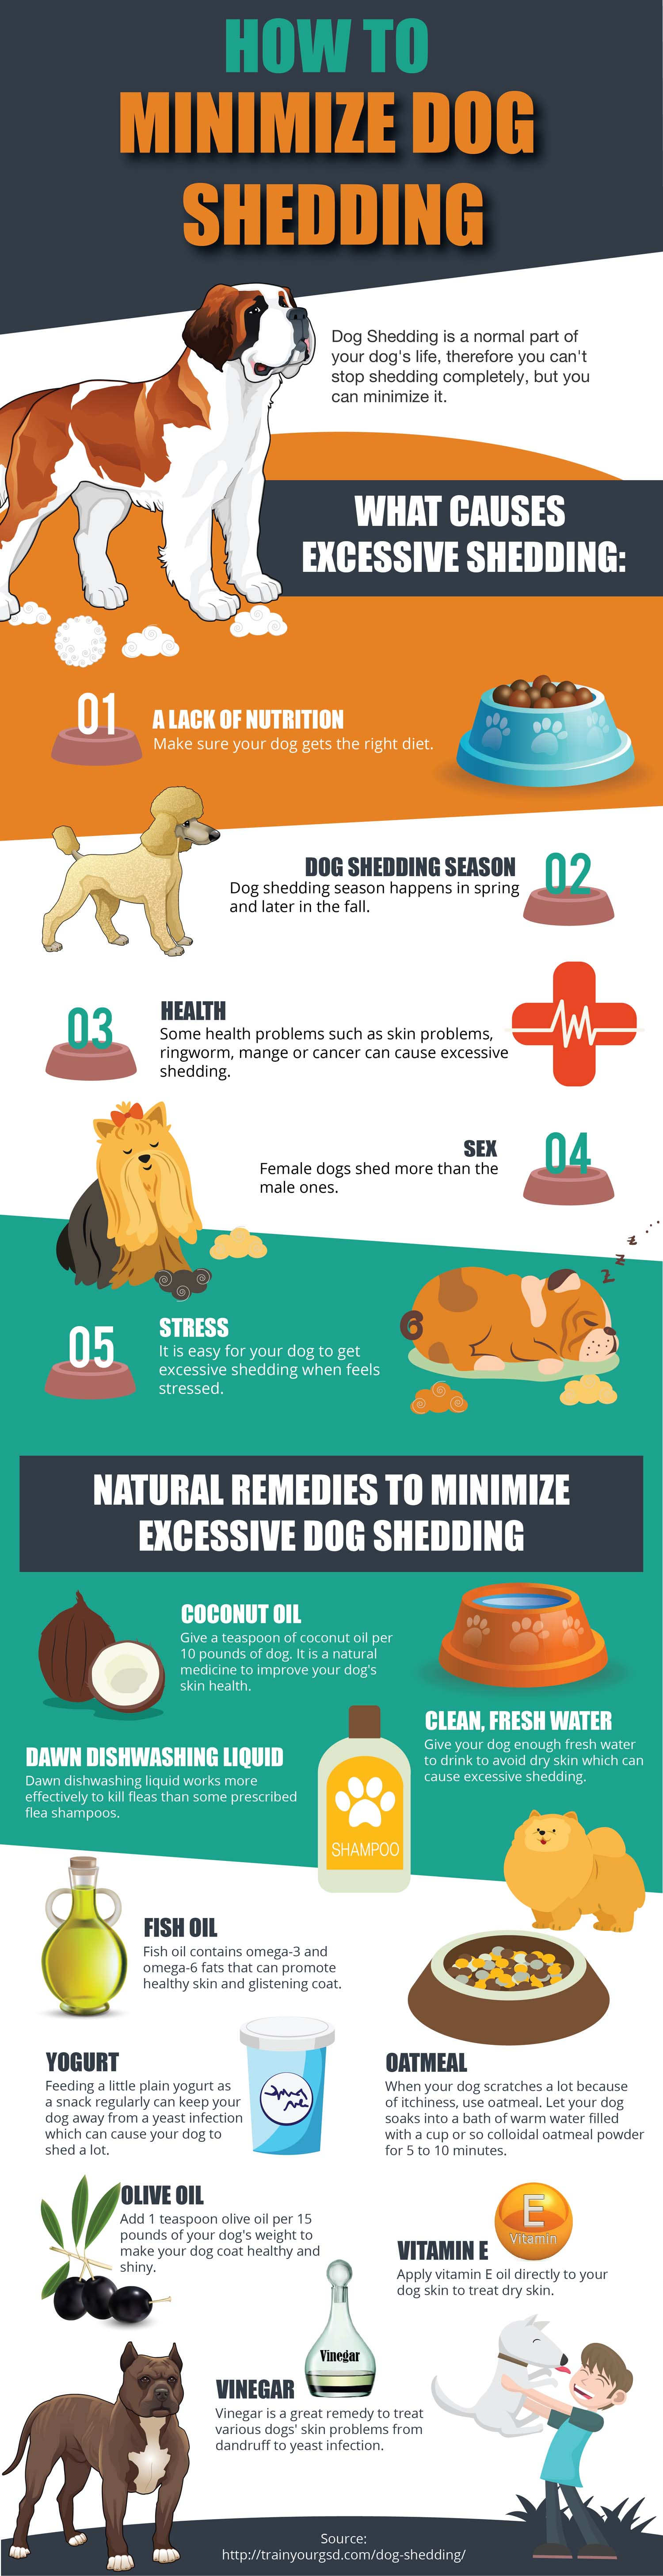 How to Stop and Minimize Dog Shedding